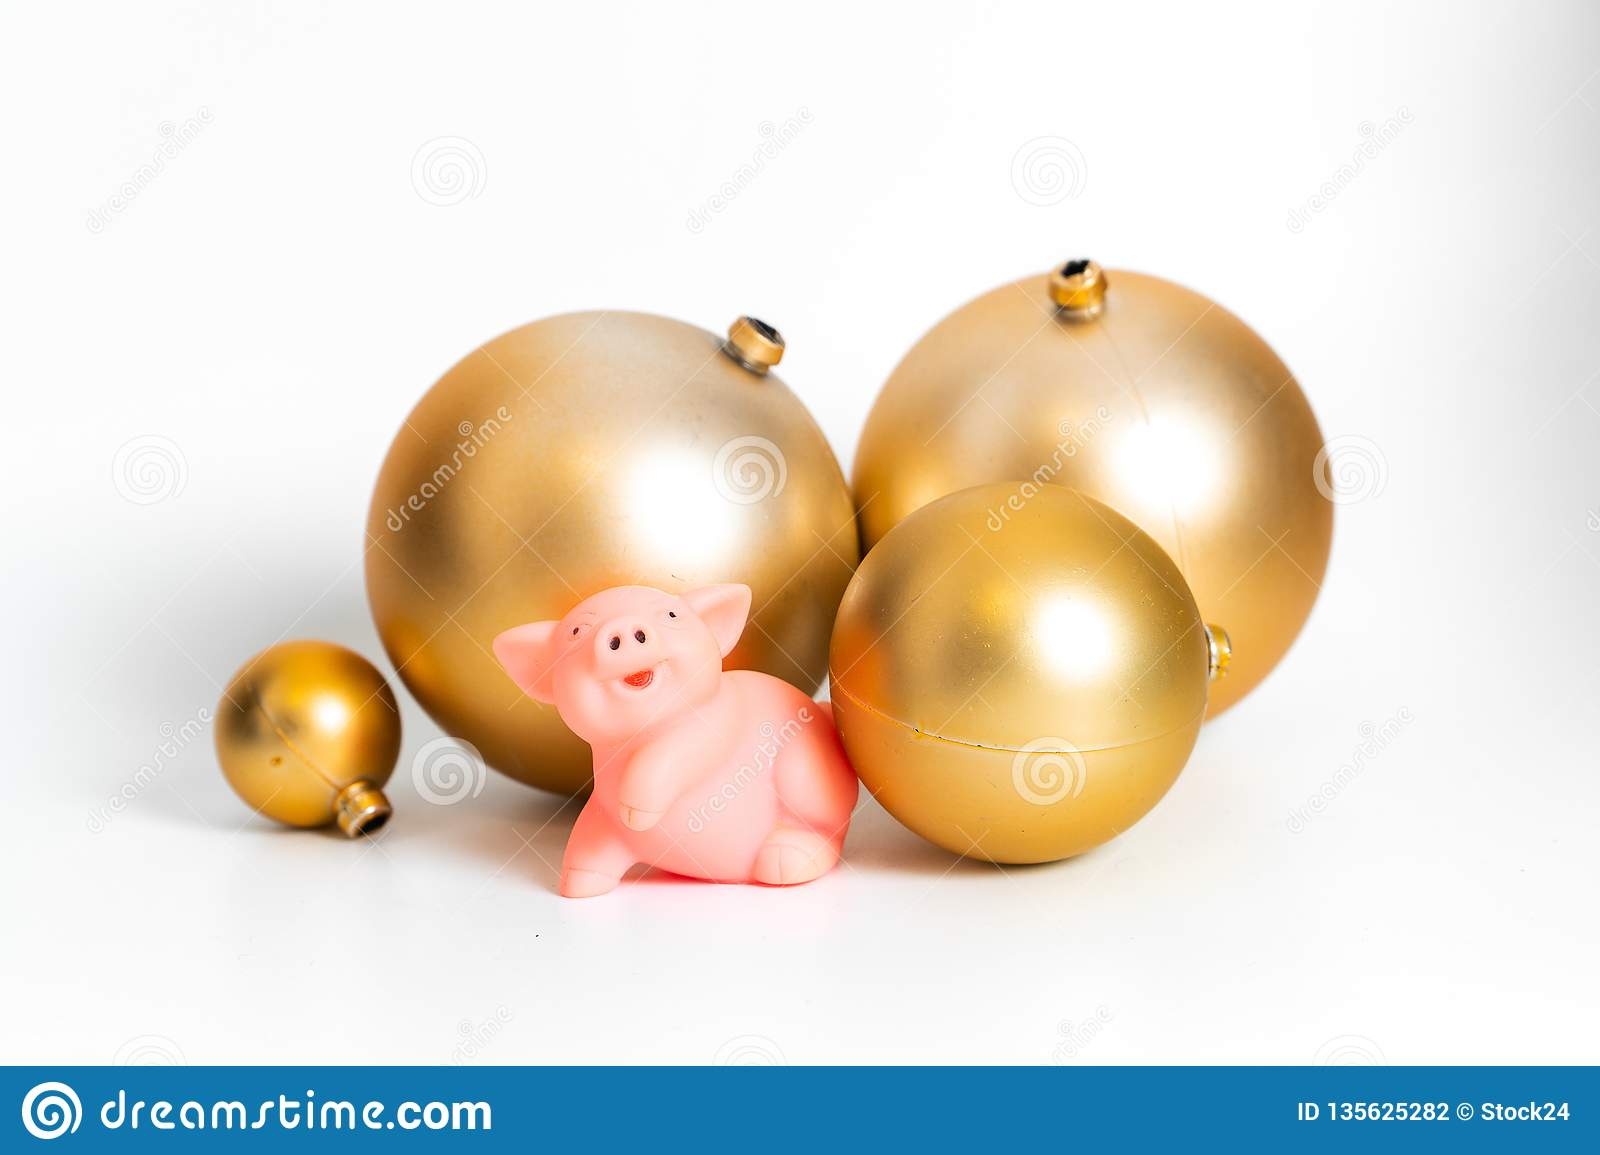 Golden balls pig Chinese New Year symbol traditional cultural zodiac calendar isolated